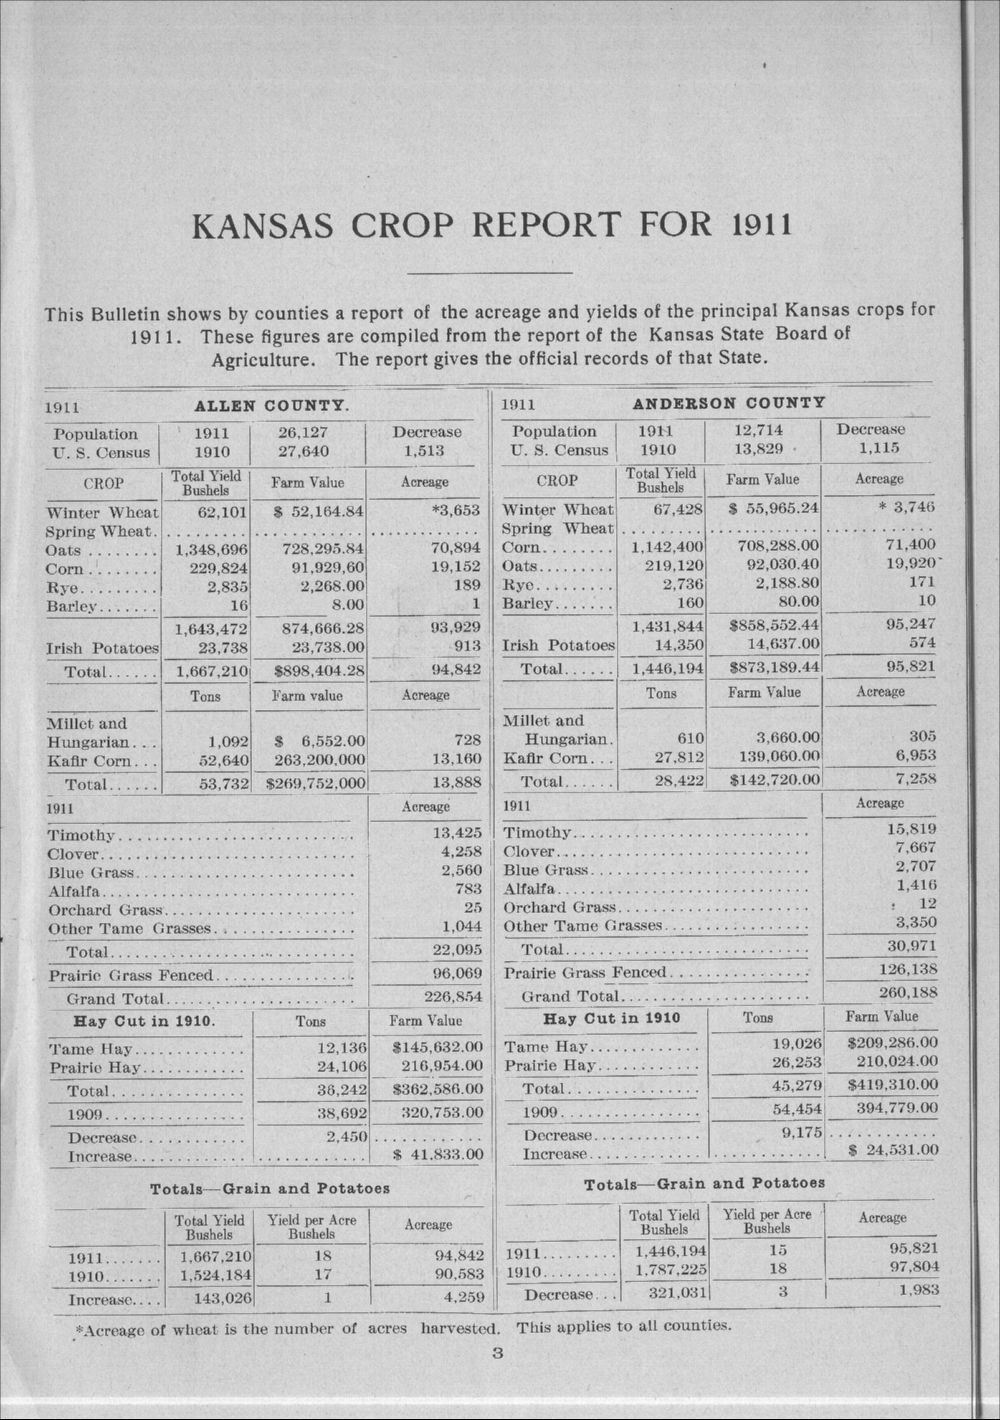 Principal crop yields of Kansas by counties for 1911 - 3